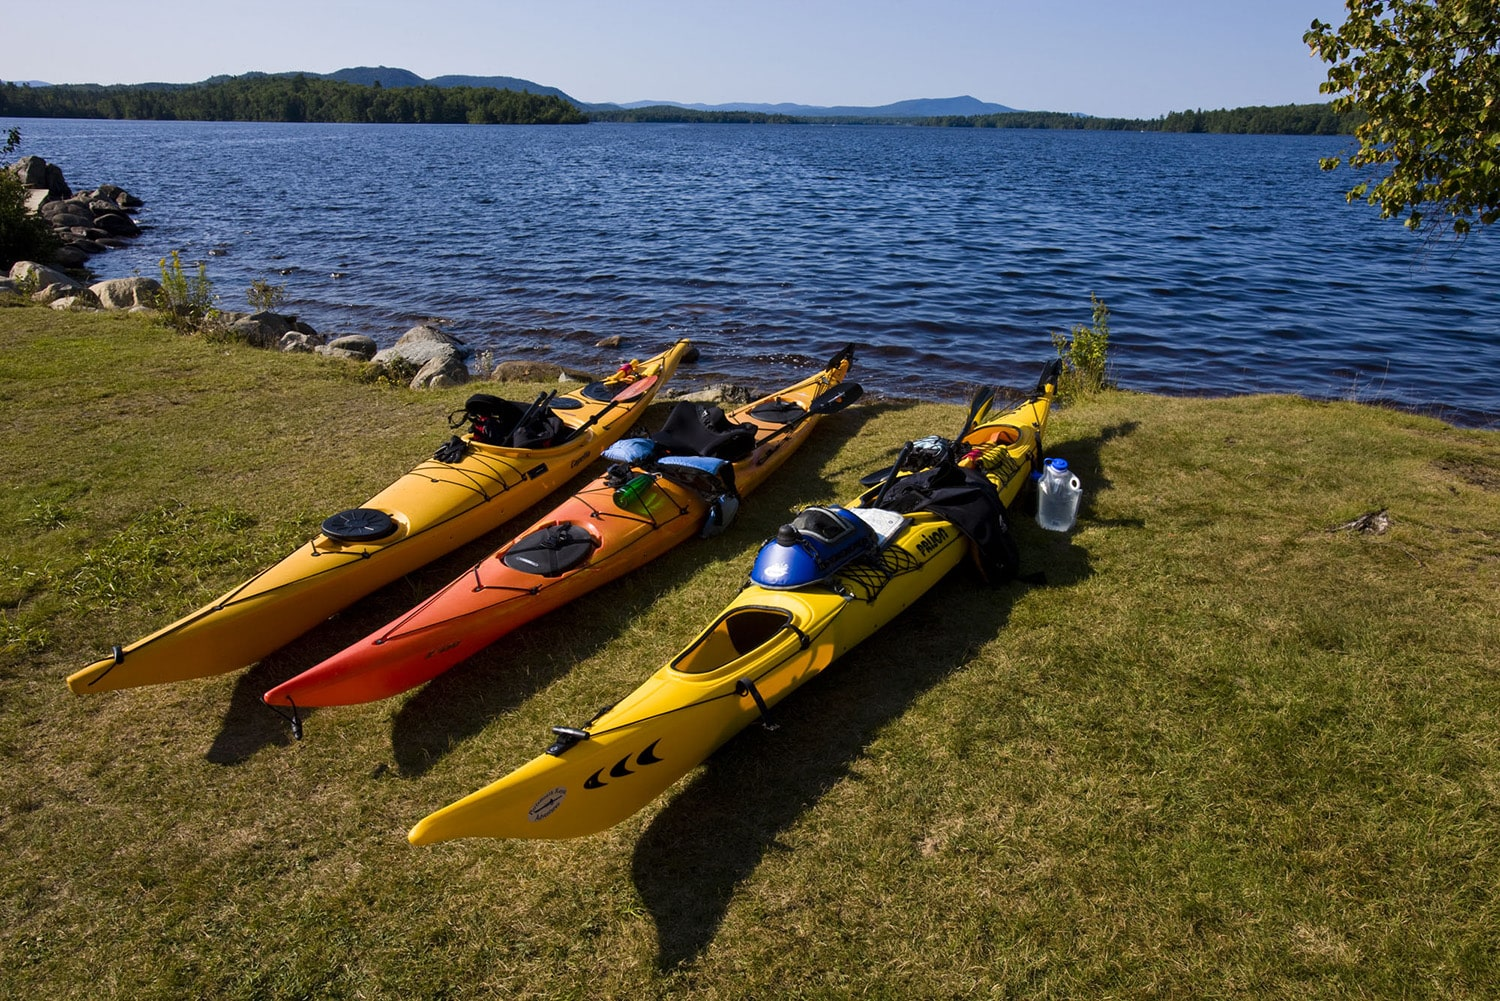 3 kayaks sitting on grass in front of a lake